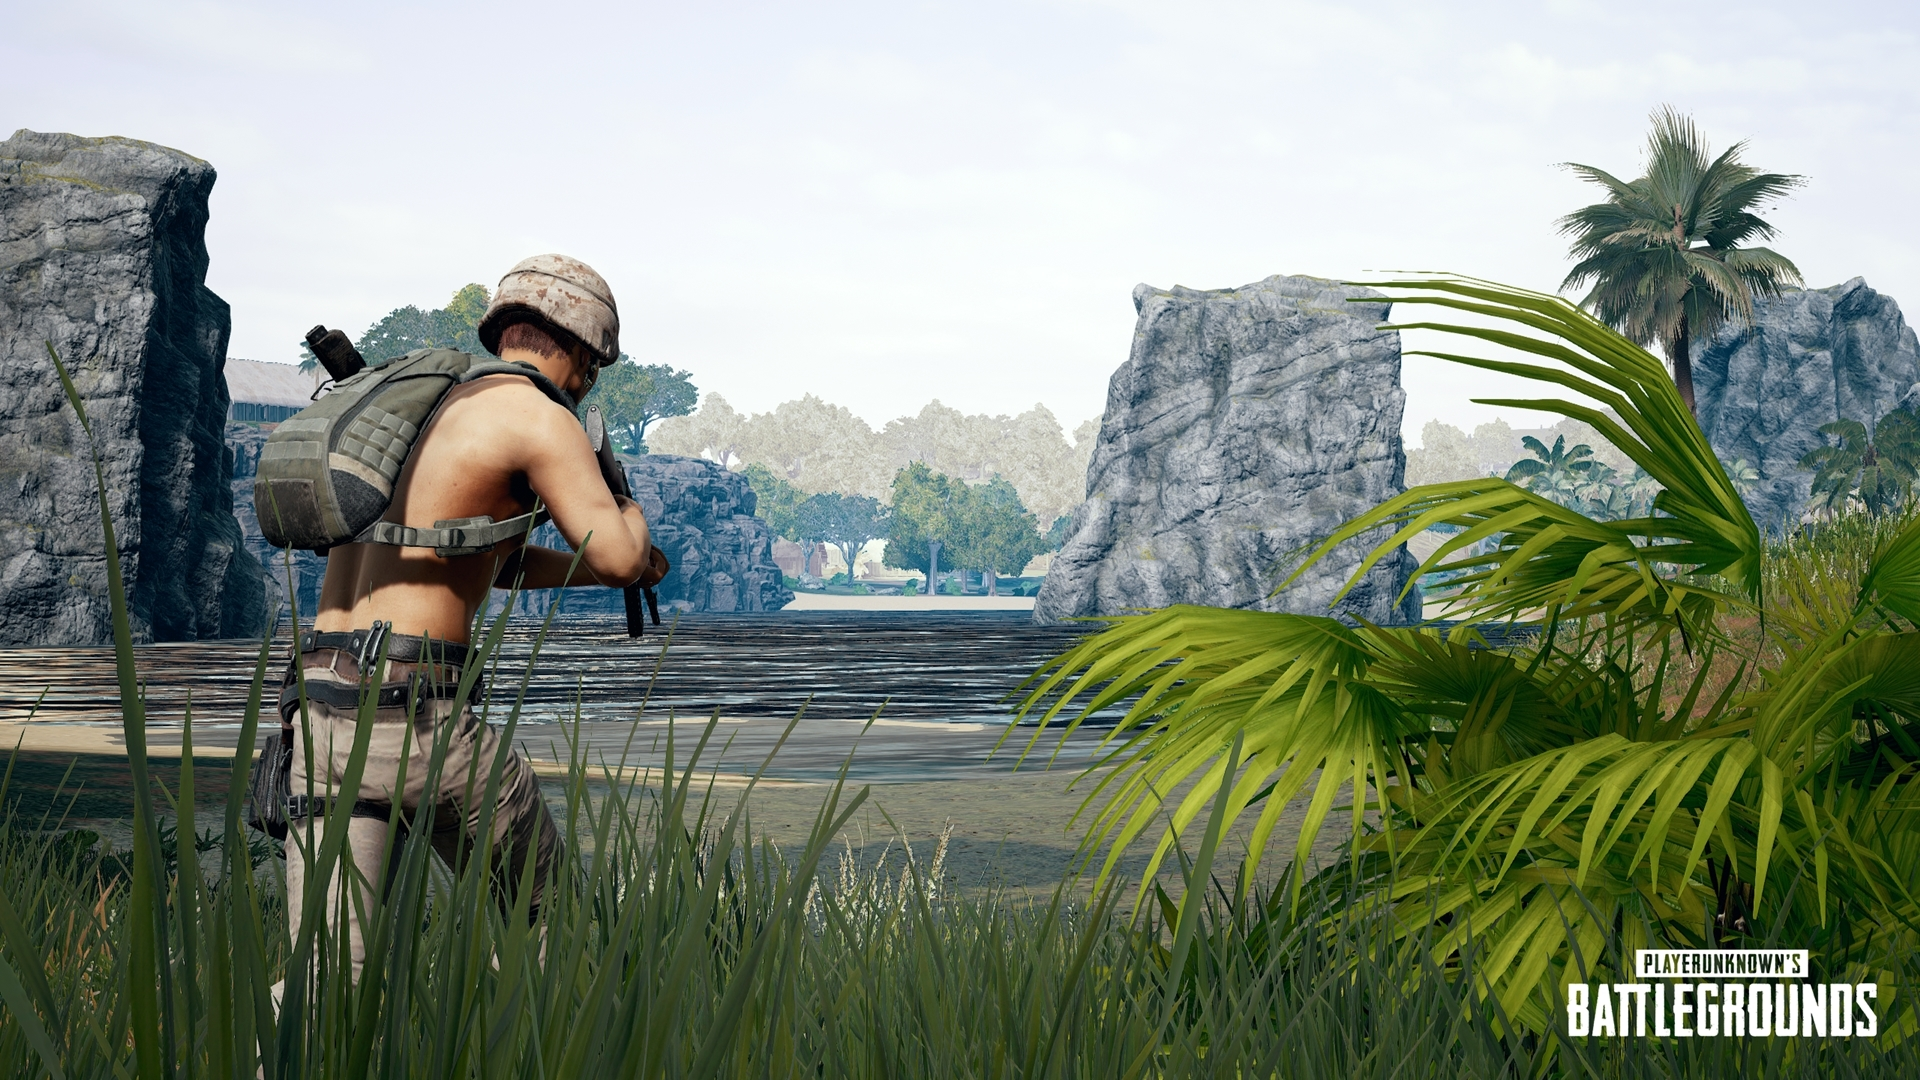 Pubg Sanhok Wallpaper 4k: PUBG's 4x4km Map, Codename: Savage, Starts Testing Today